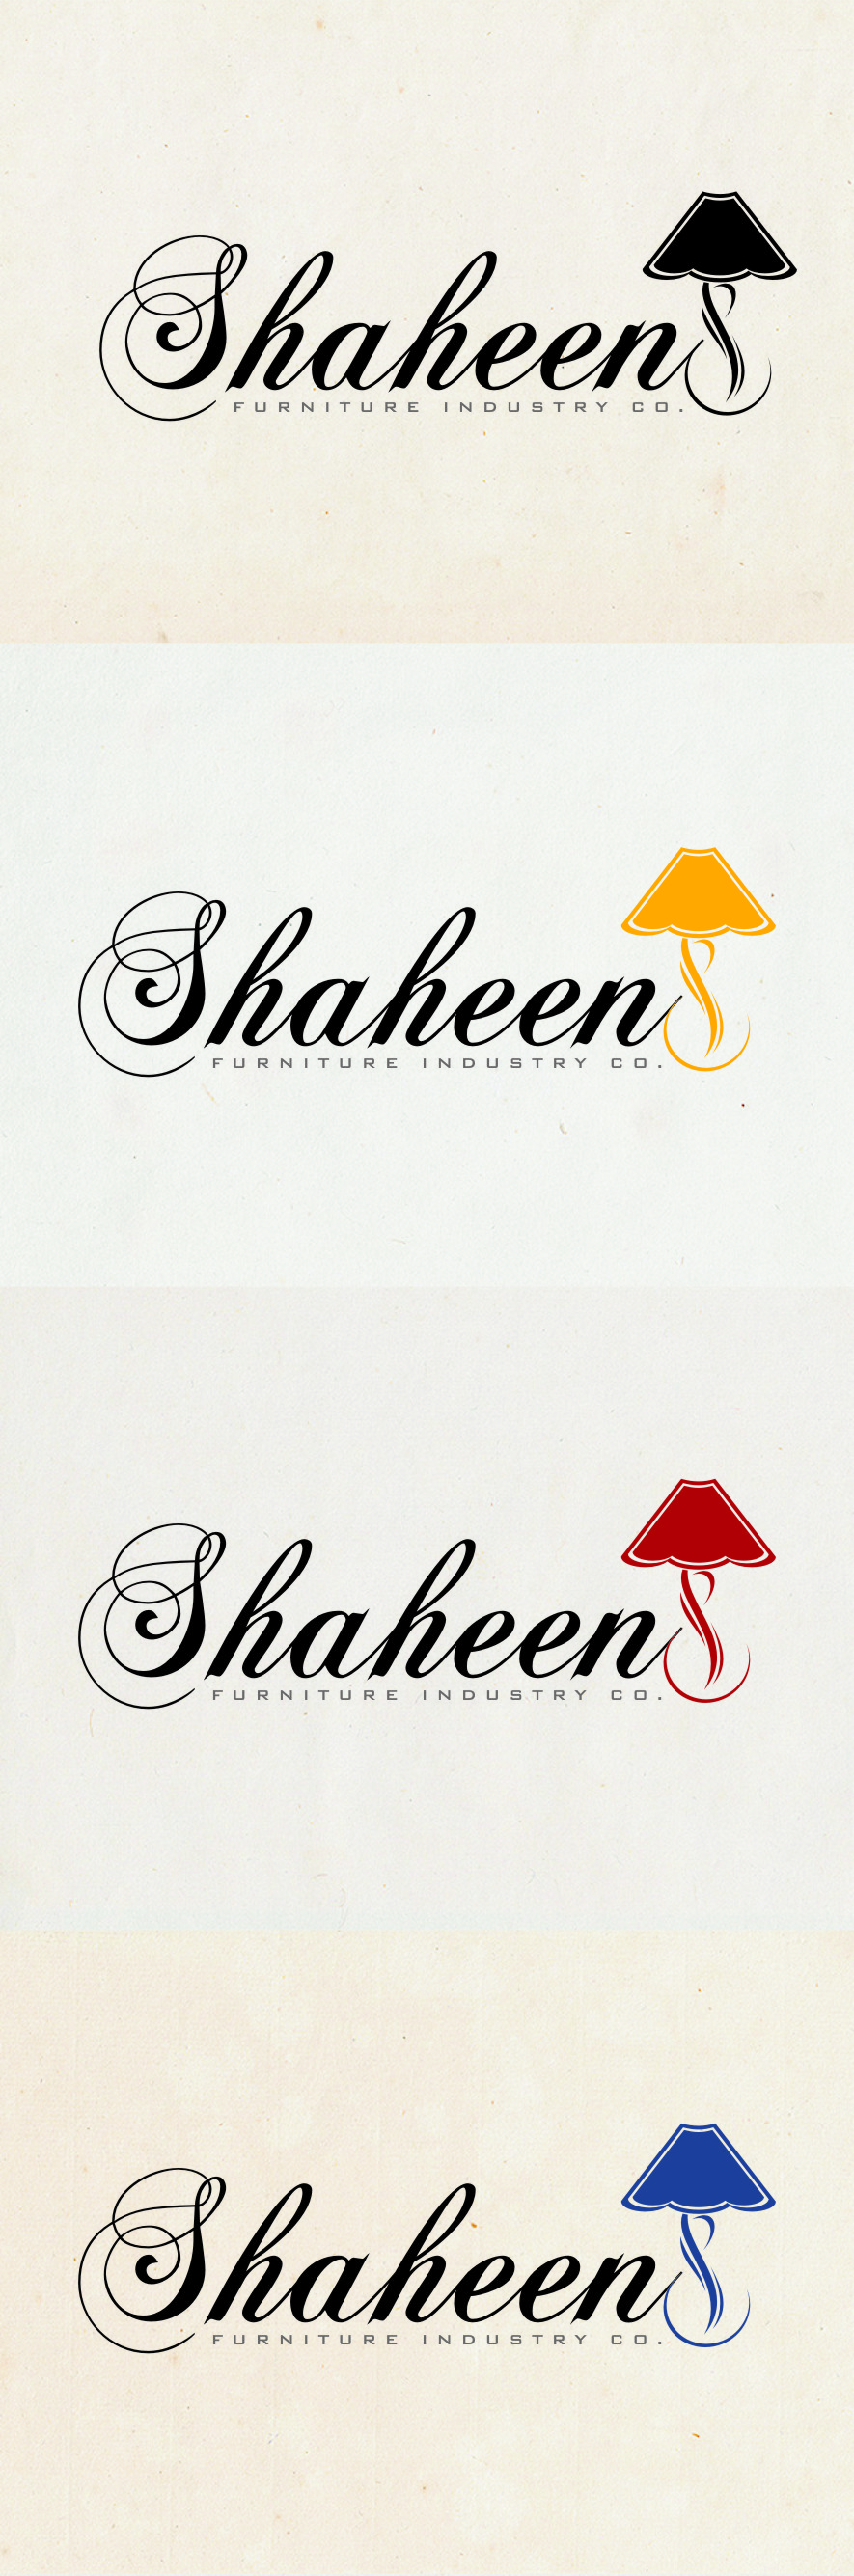 Logo Design by RasYa Muhammad Athaya - Entry No. 102 in the Logo Design Contest Artistic Logo Design for Shaheen Furniture Industry Co..